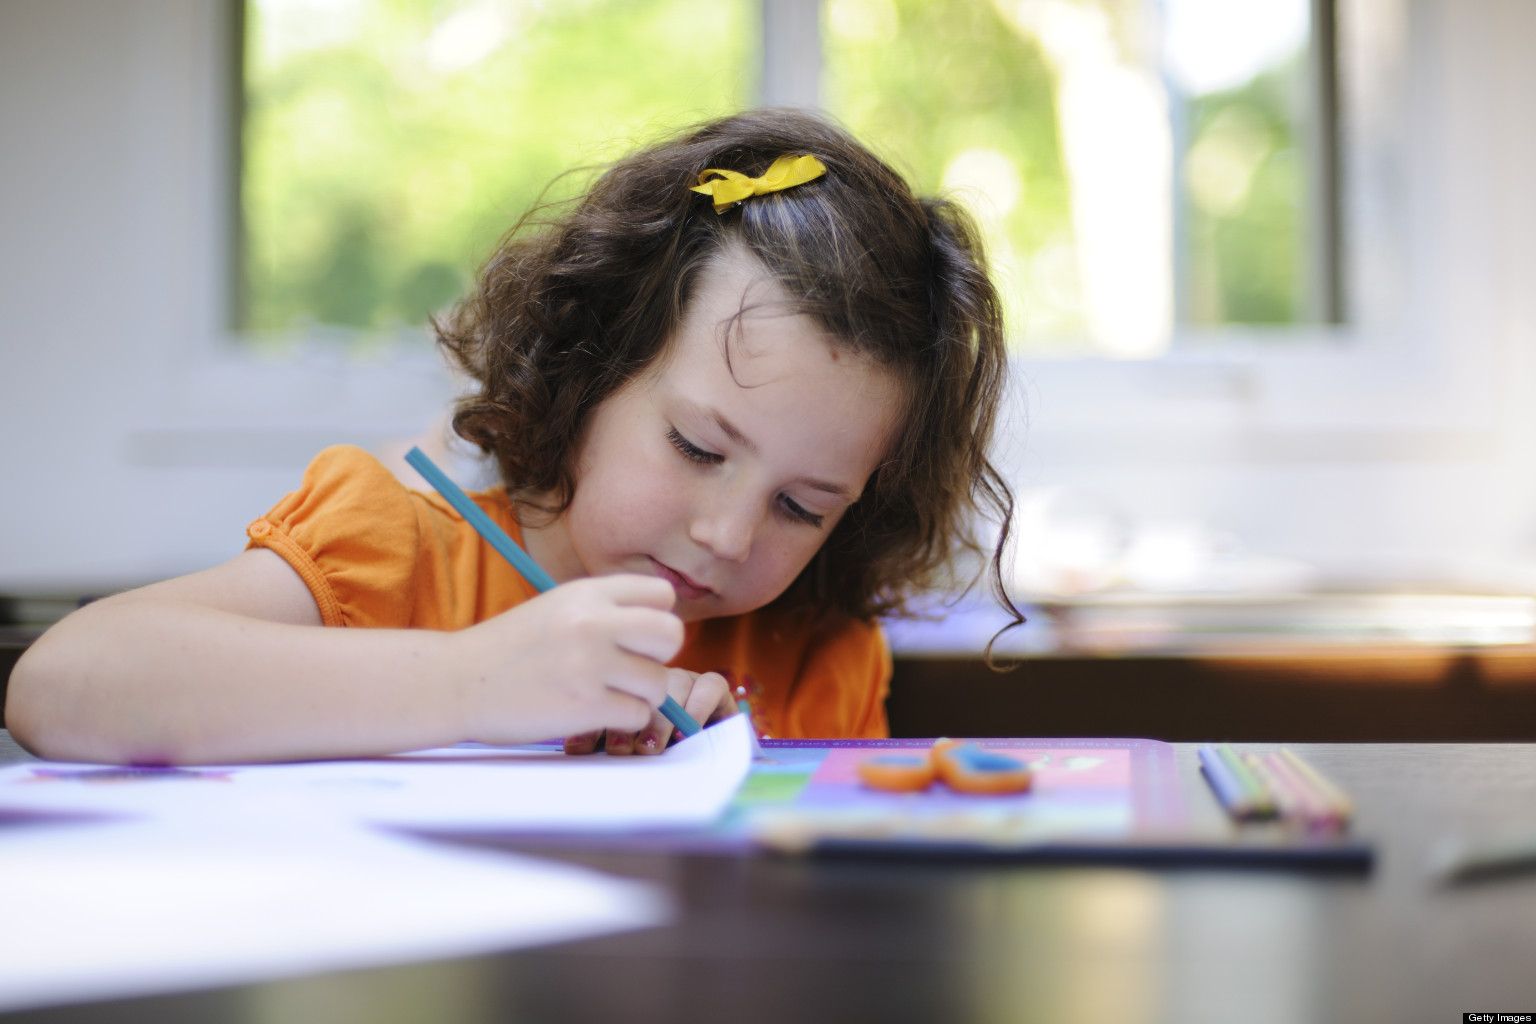 Young girl drawing with pencils